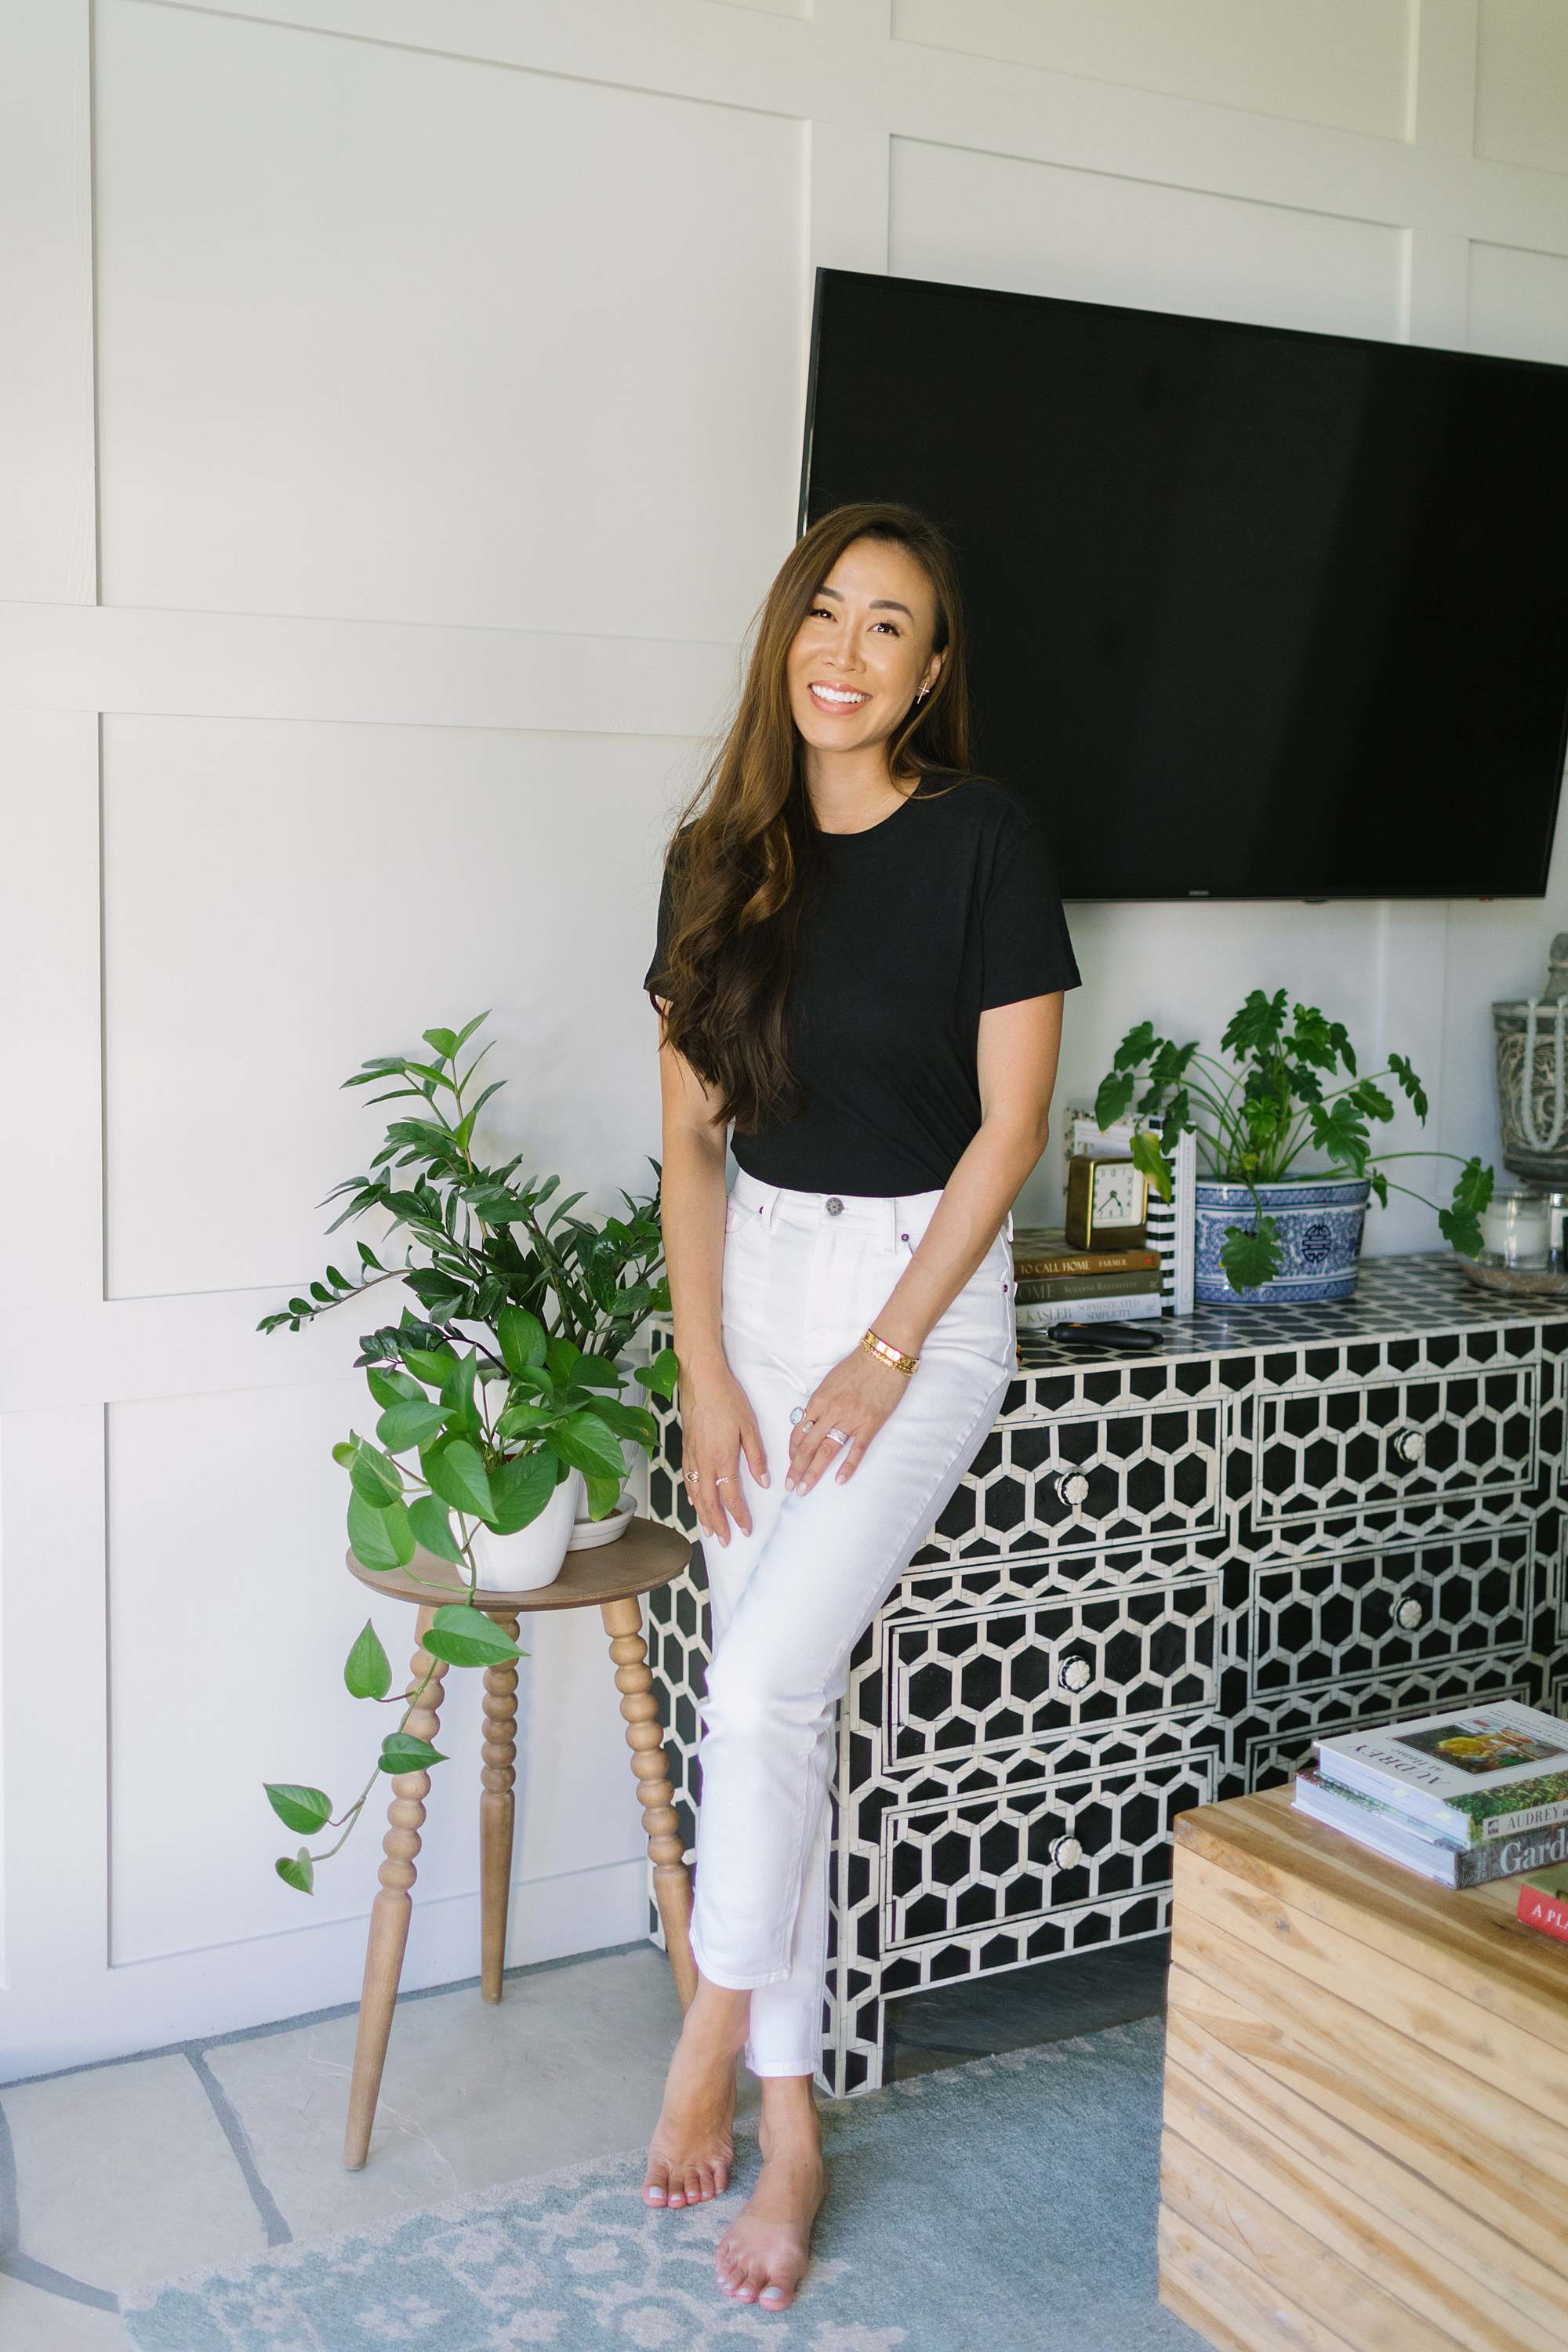 Diana Elizabeth phoenix lifestyle blogger in white pants blacks shirt leaning against black and white bone dresser by lots of house plants. jeans and top by Mott and bow